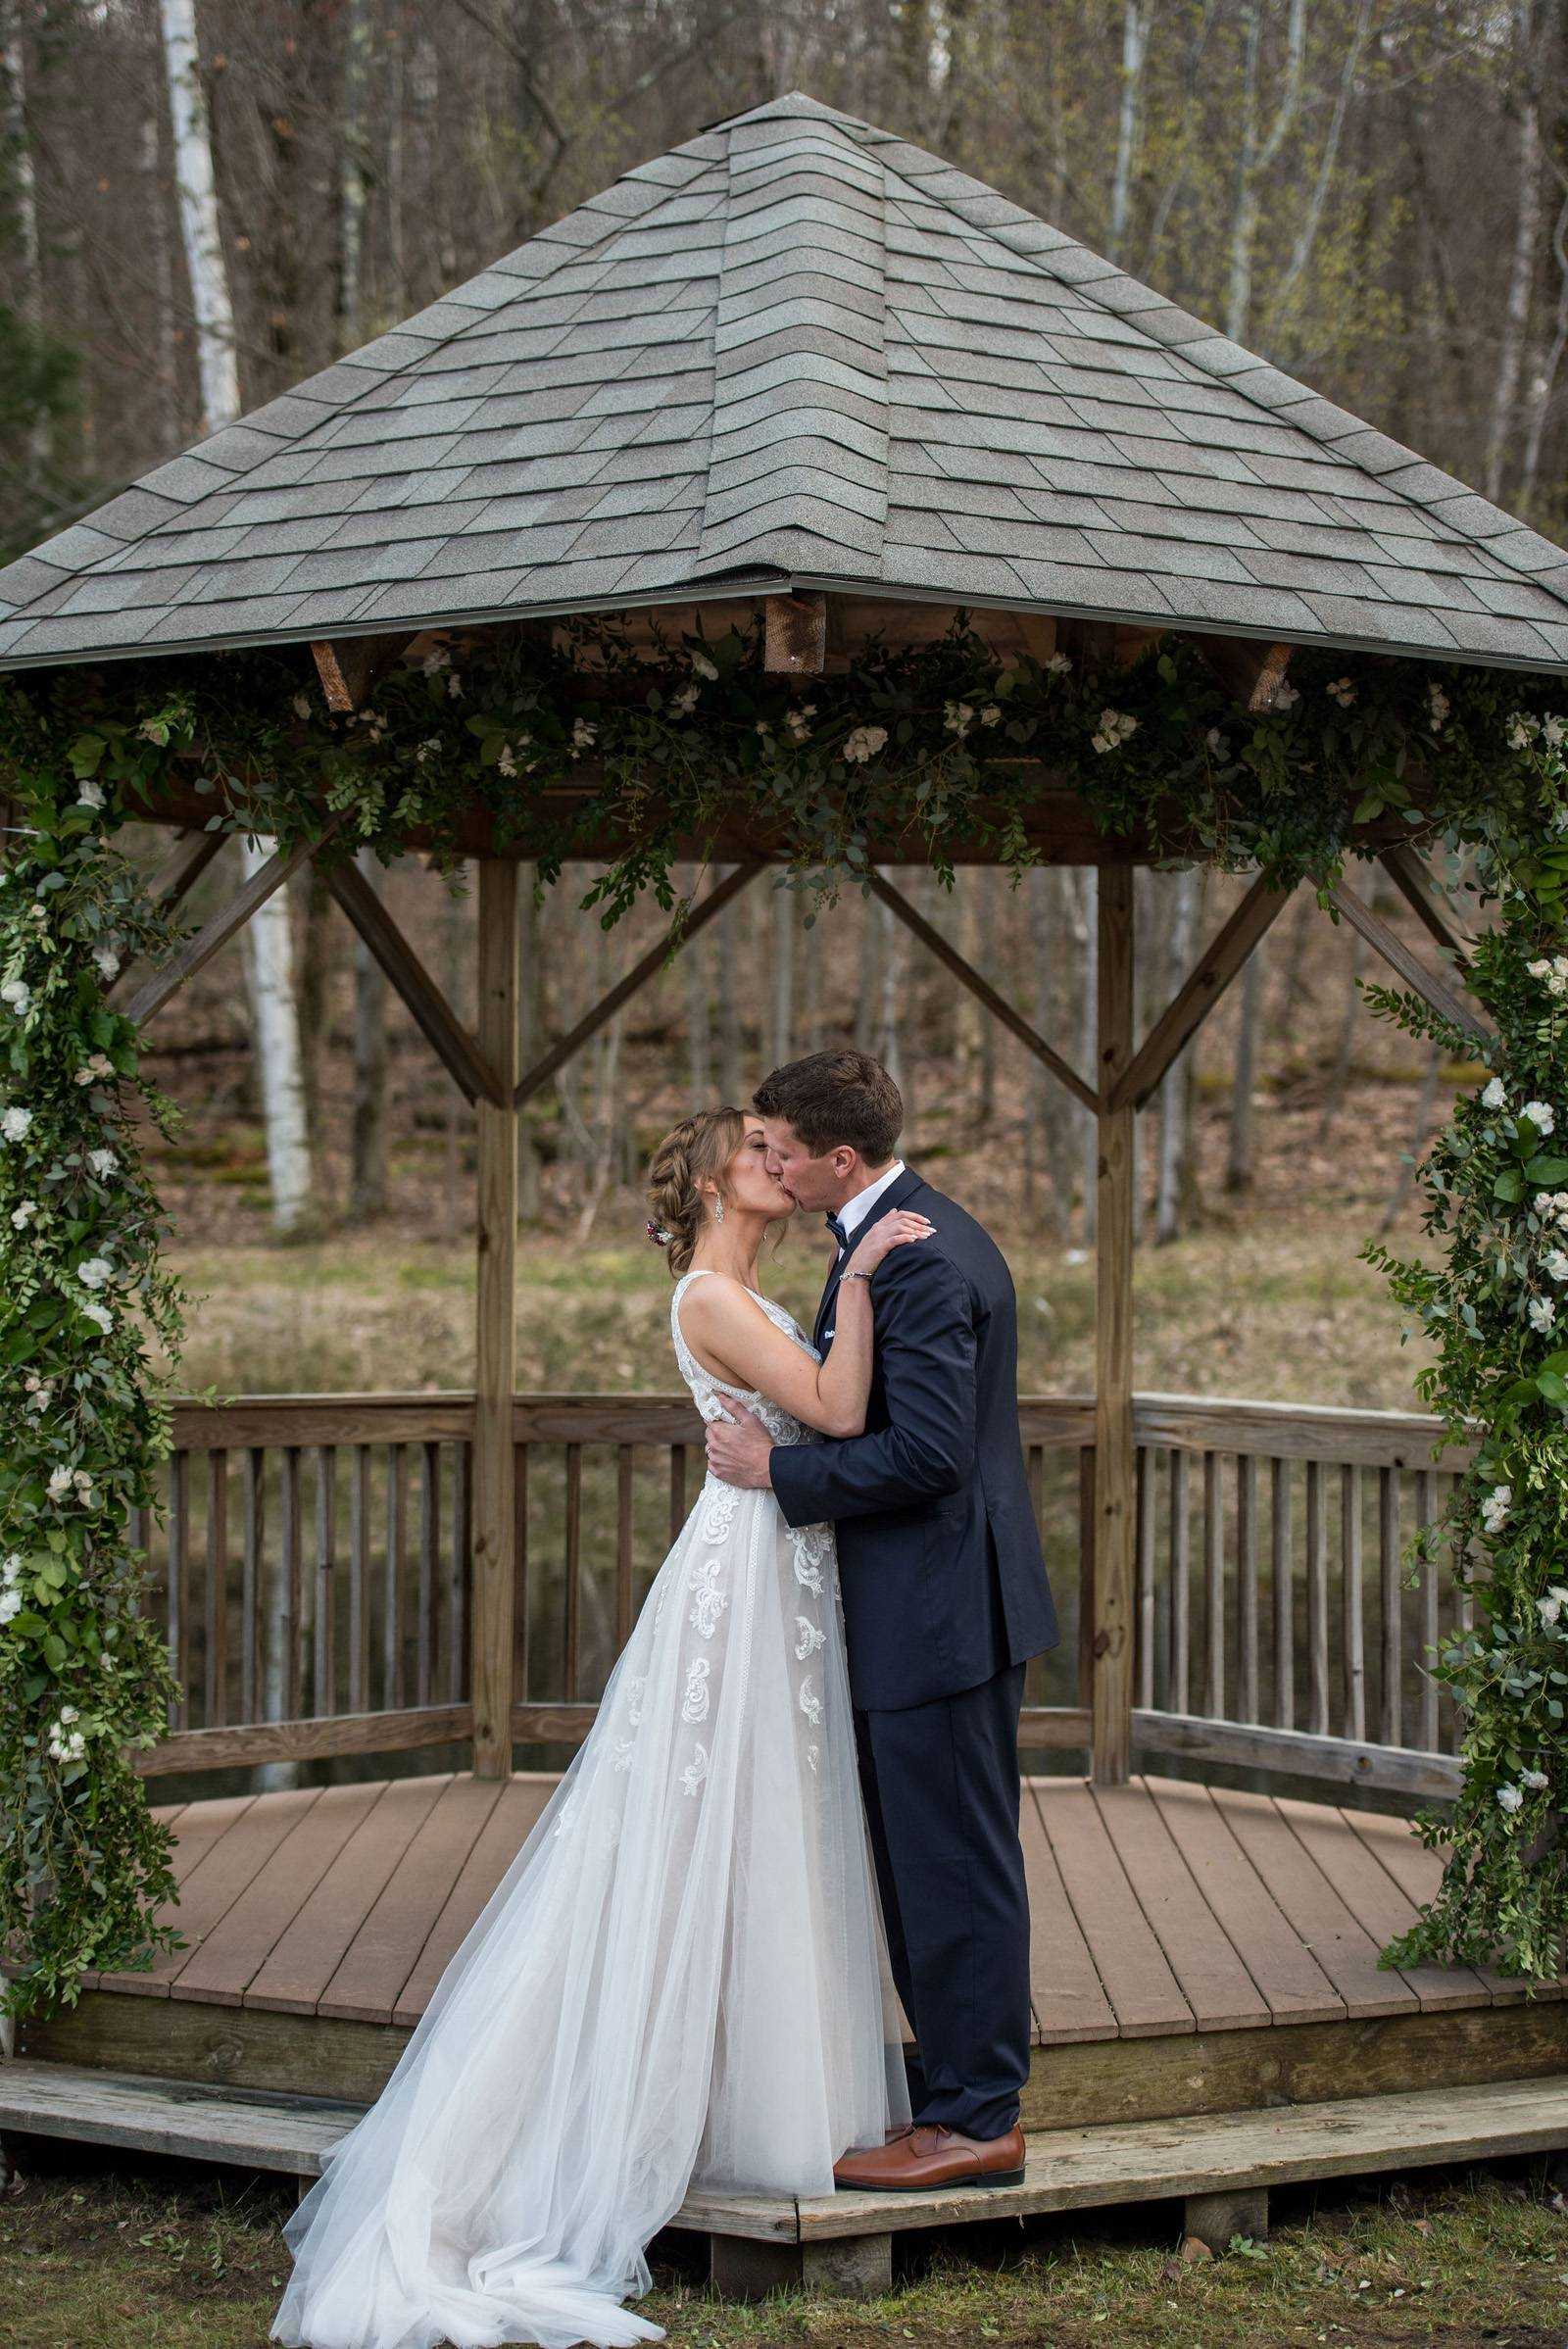 Bride and groom exchange vows under gazebo at Sleepy Hollow during spring Vermont wedding